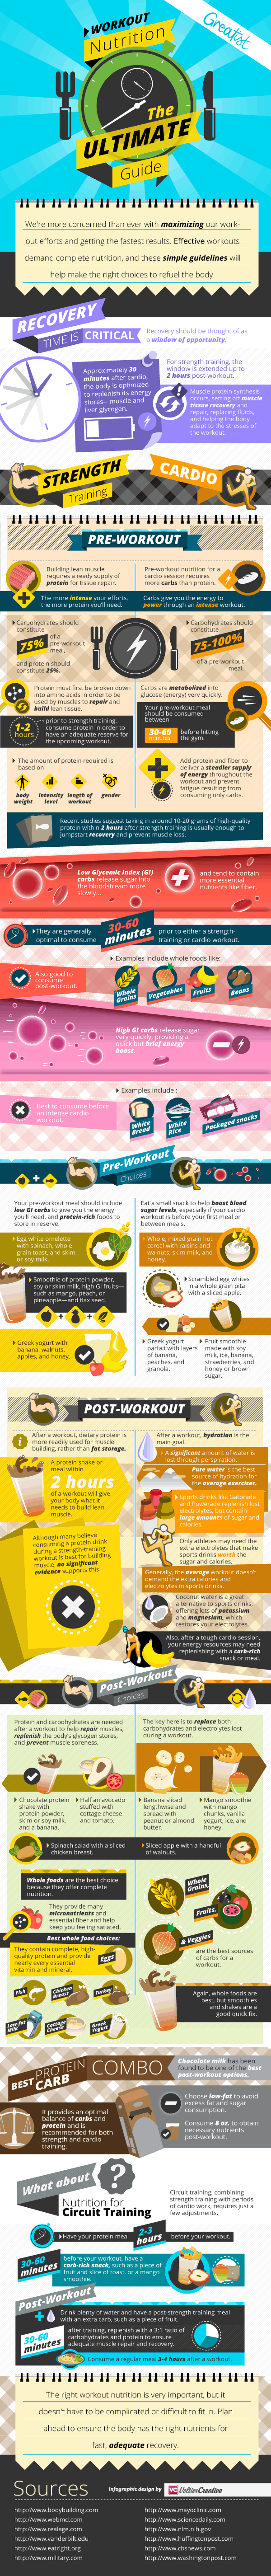 The-Complete-Guide-to-Workout-Nutrition